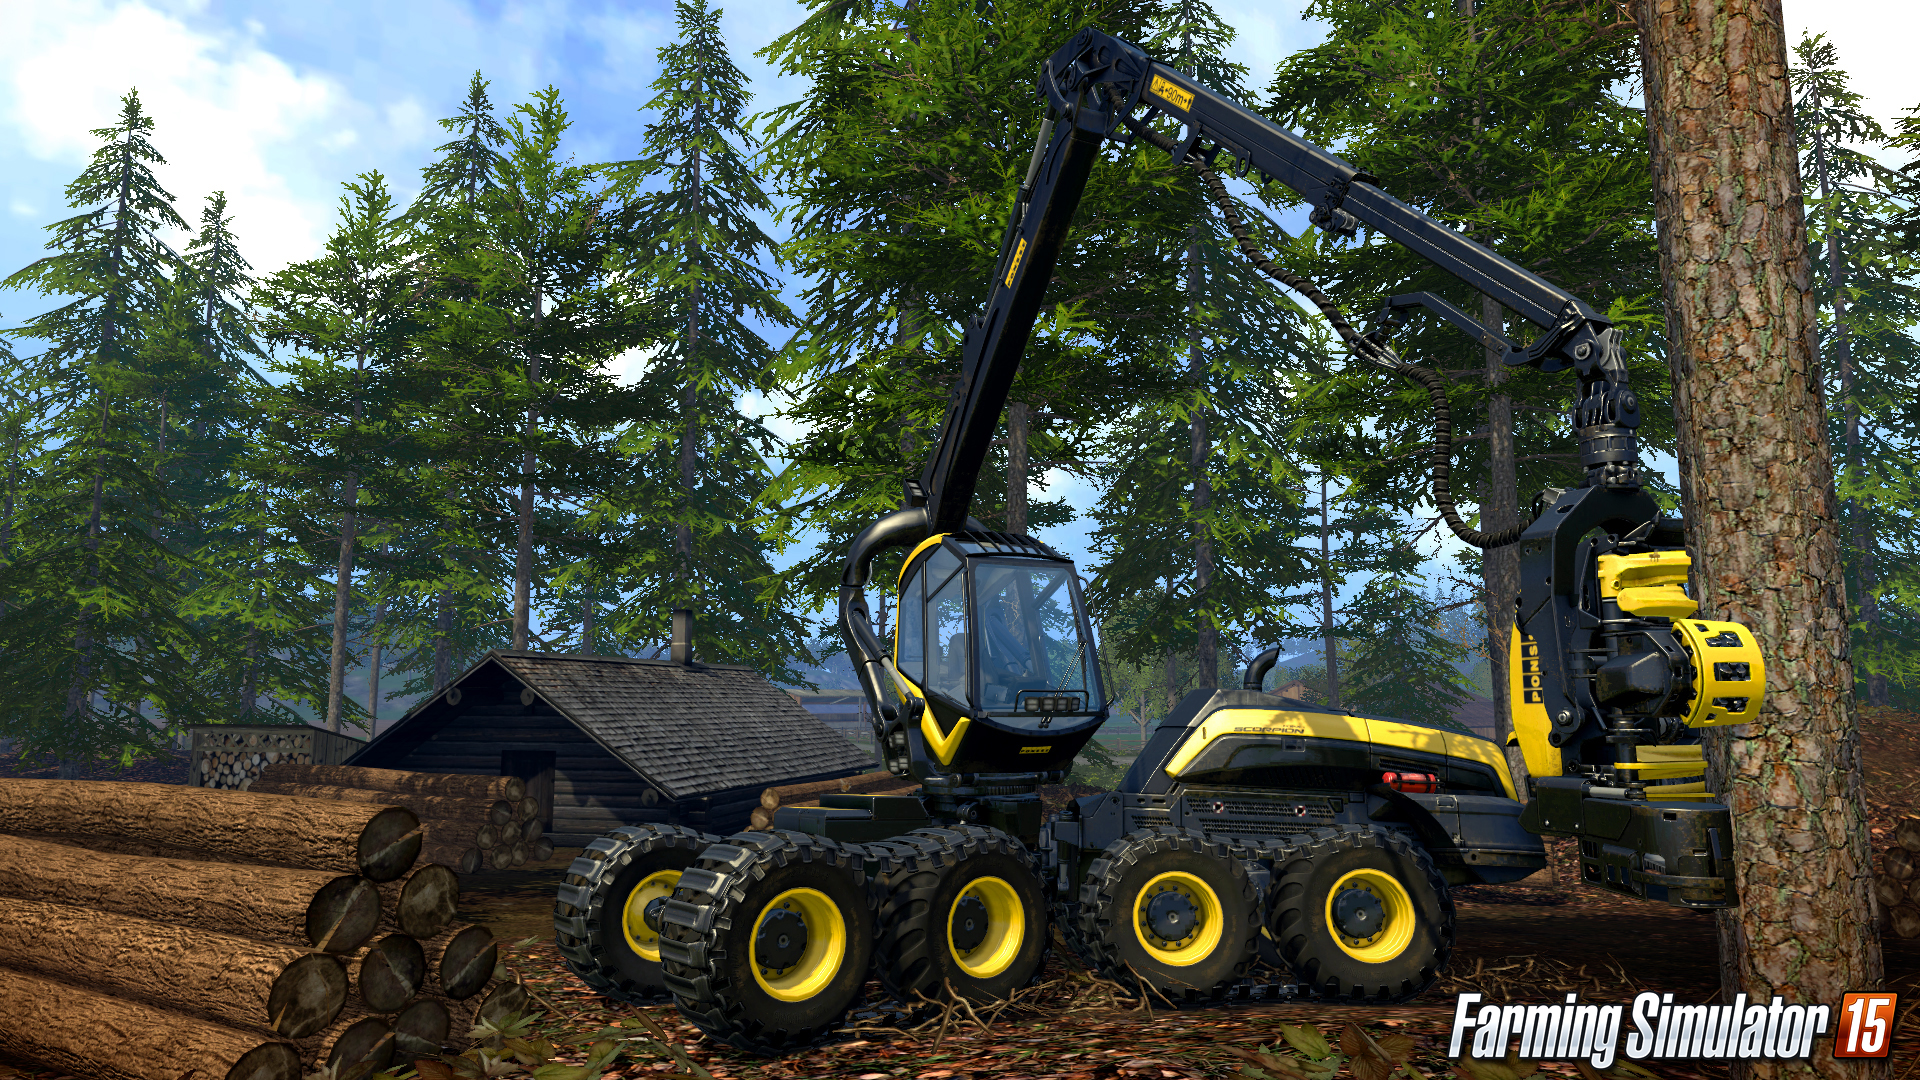 Farm Farming Simulator Farming Simulator 15